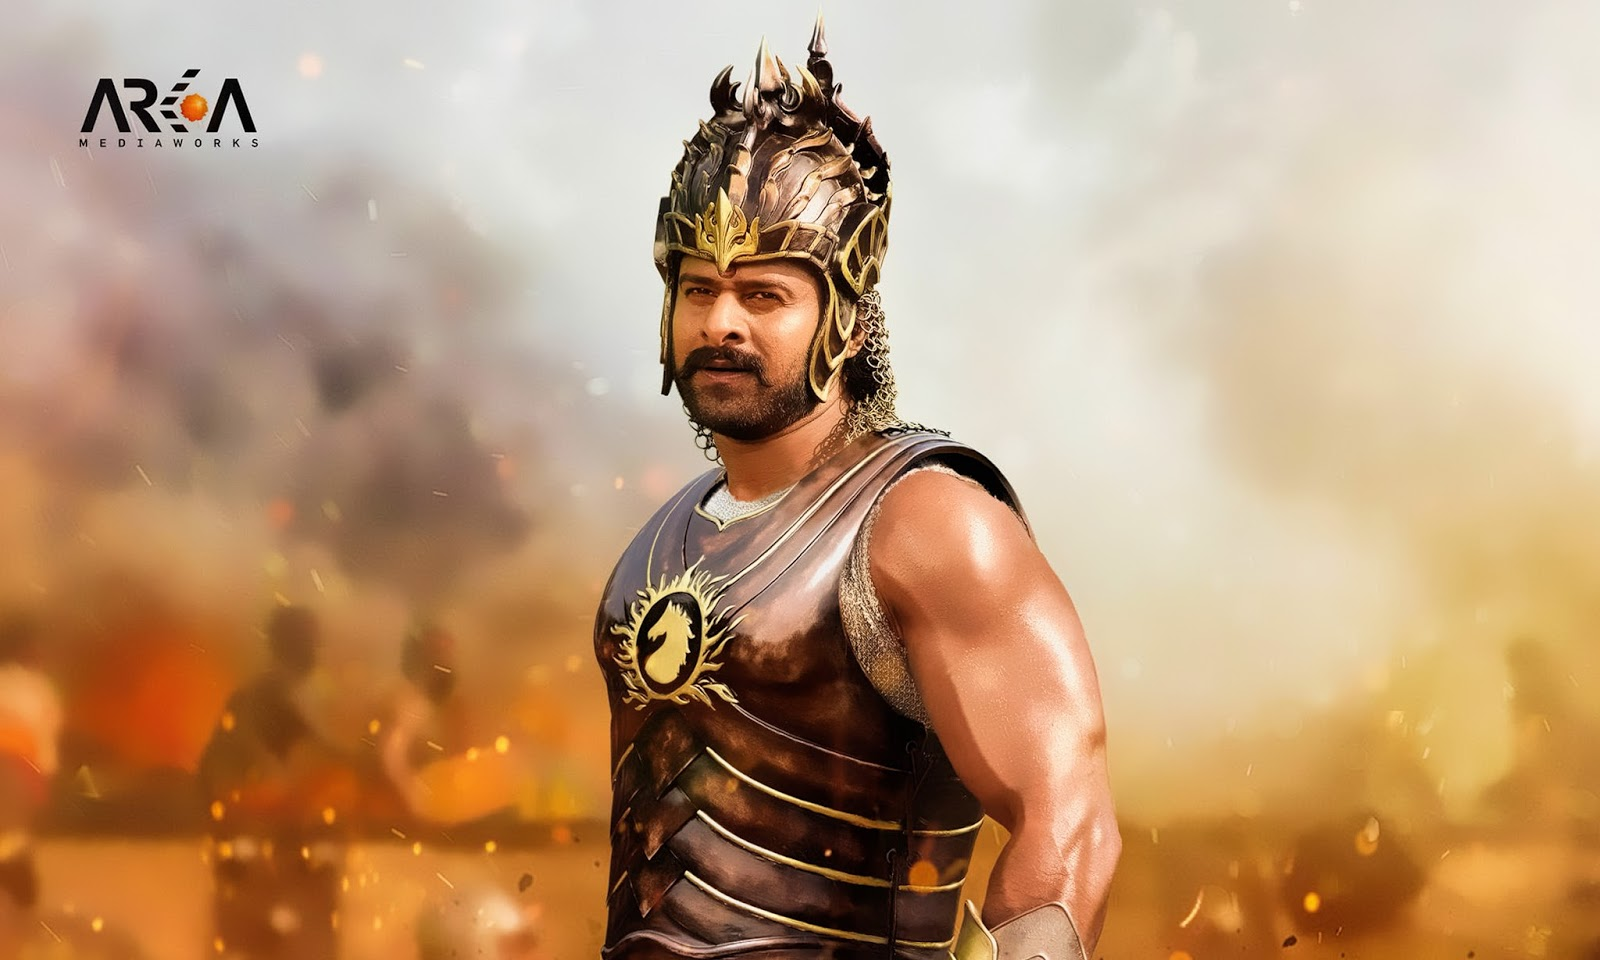 Wallpaper download bahubali 2 - Bahubali Hd Wallpapers